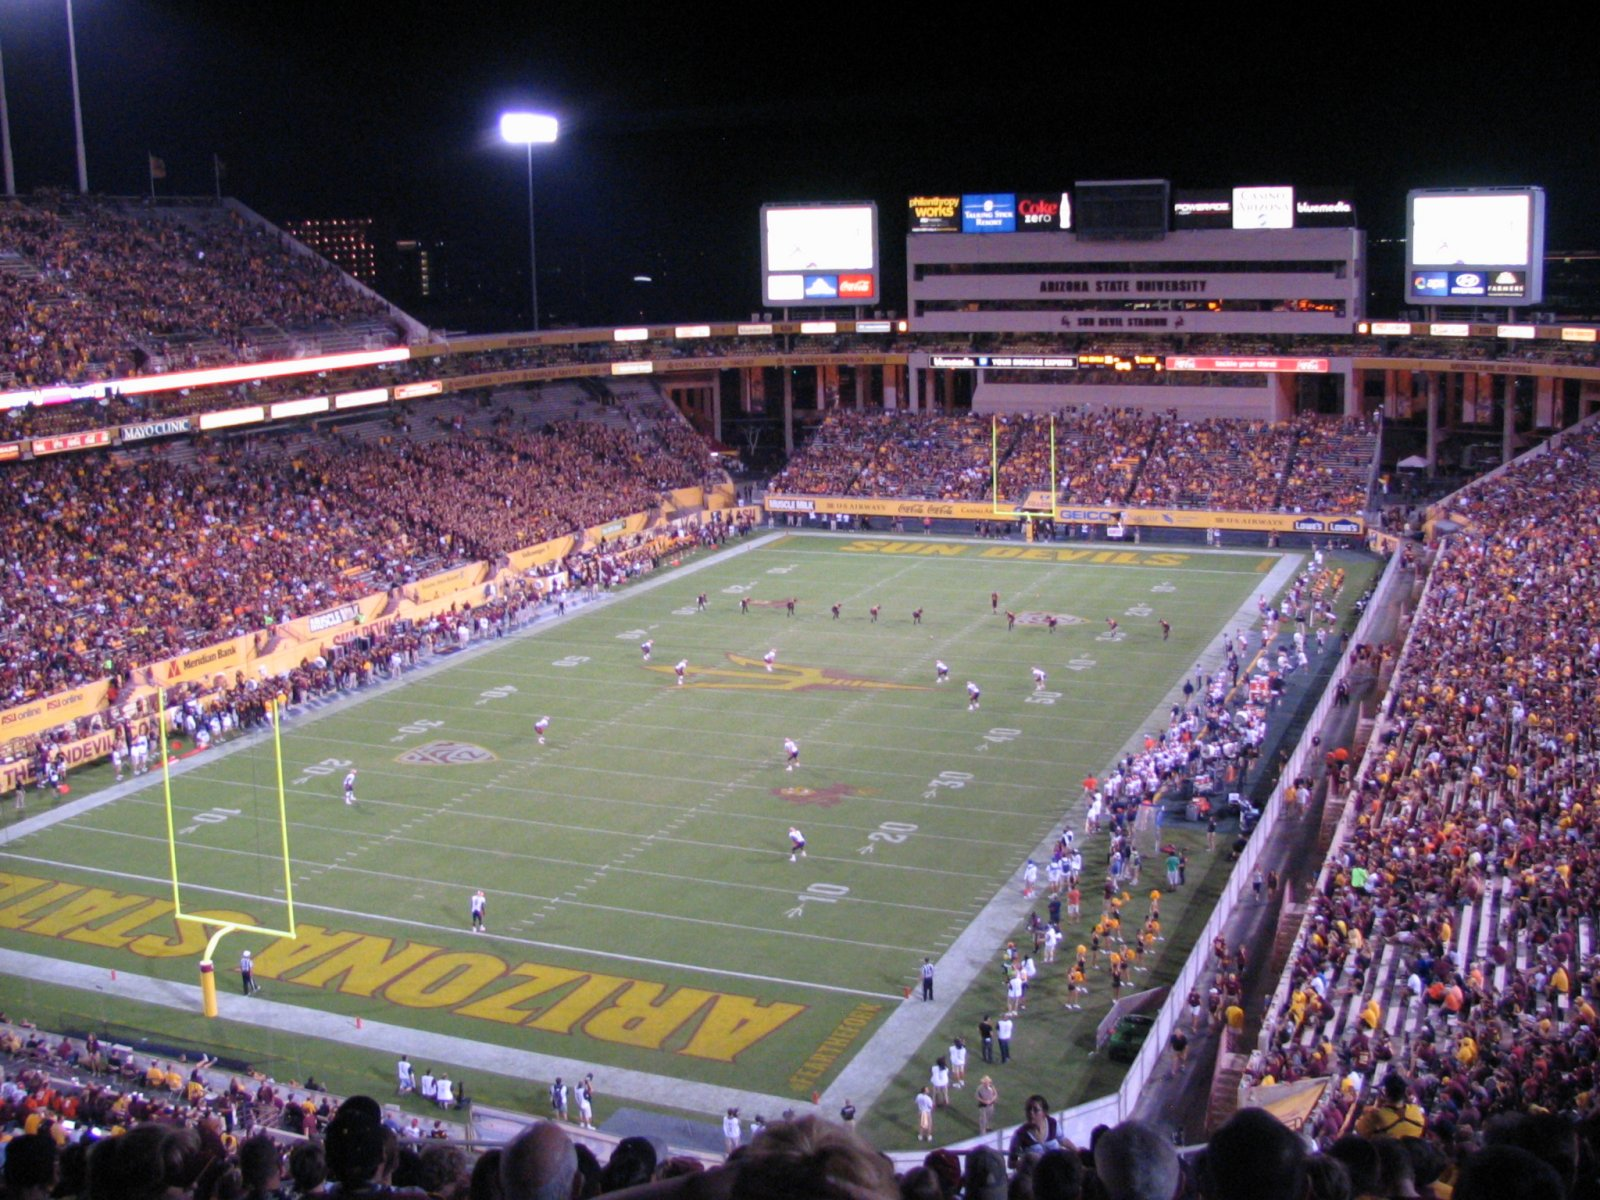 Canyon Vs Colorado >> Pacific 12 Conference College Football Stadiums Wallpapers